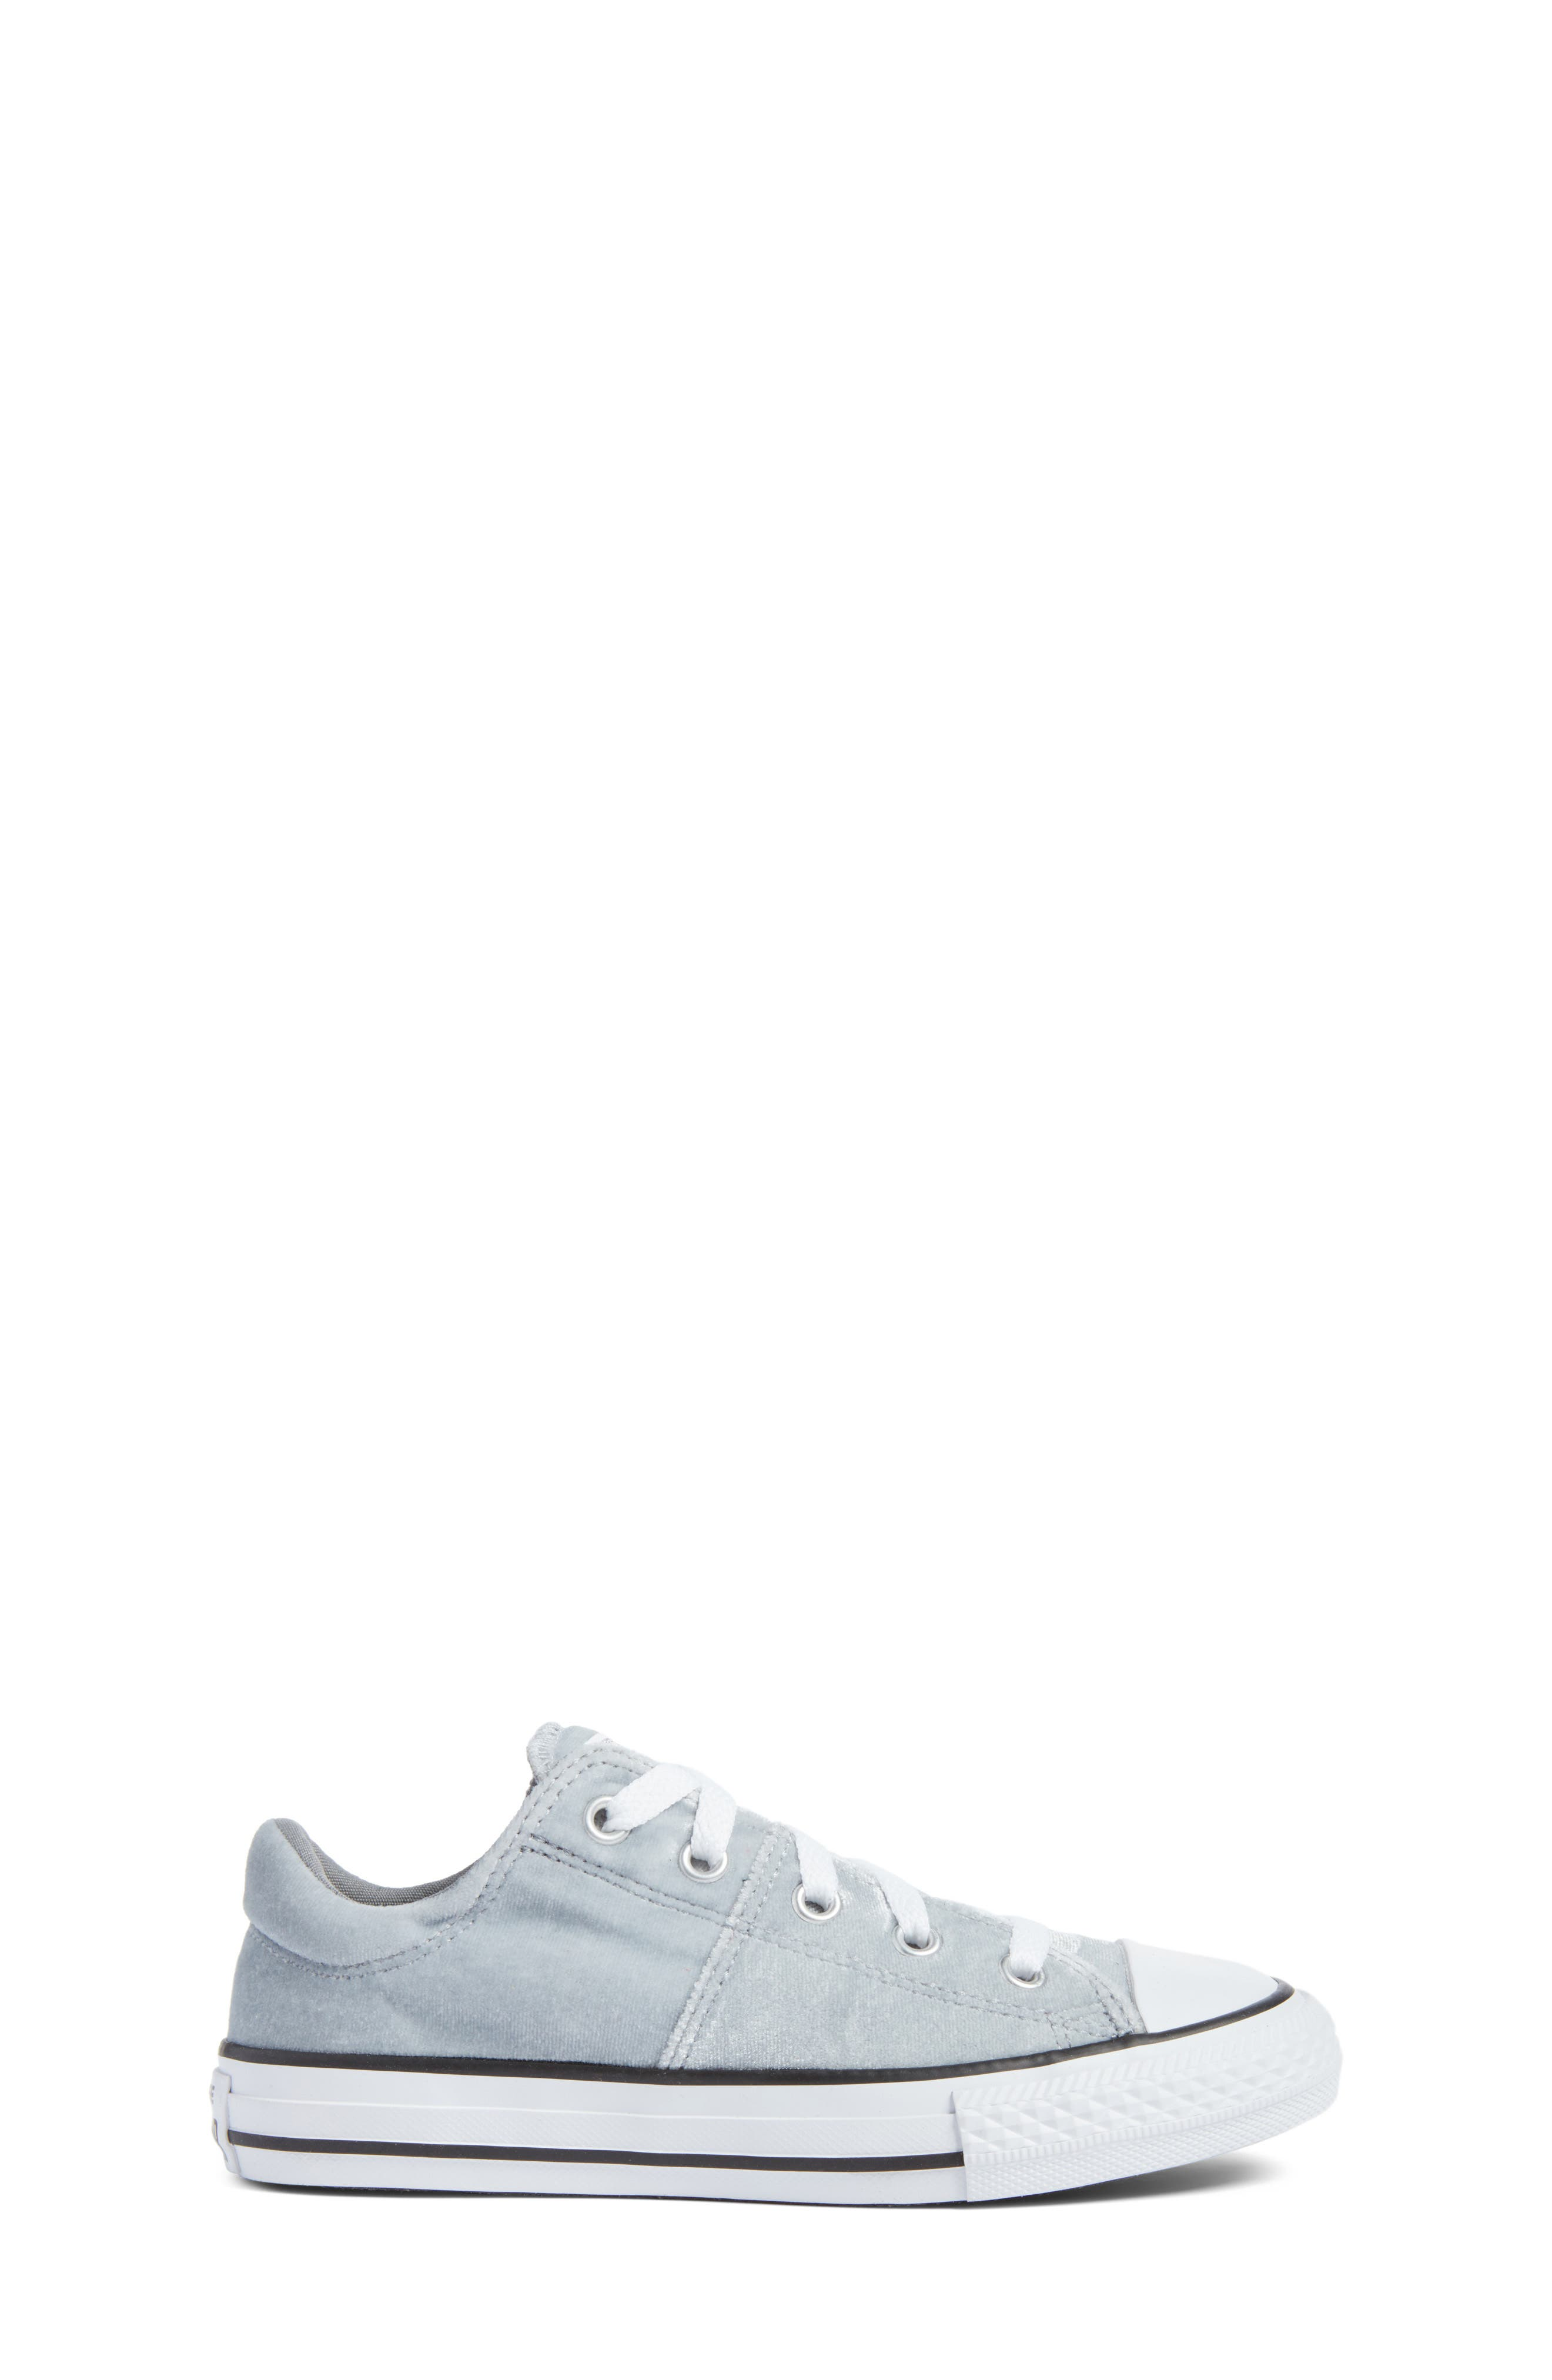 Chuck Taylor<sup>®</sup> All Star<sup>®</sup> Madison Velvet Low Top Sneaker,                             Alternate thumbnail 3, color,                             020